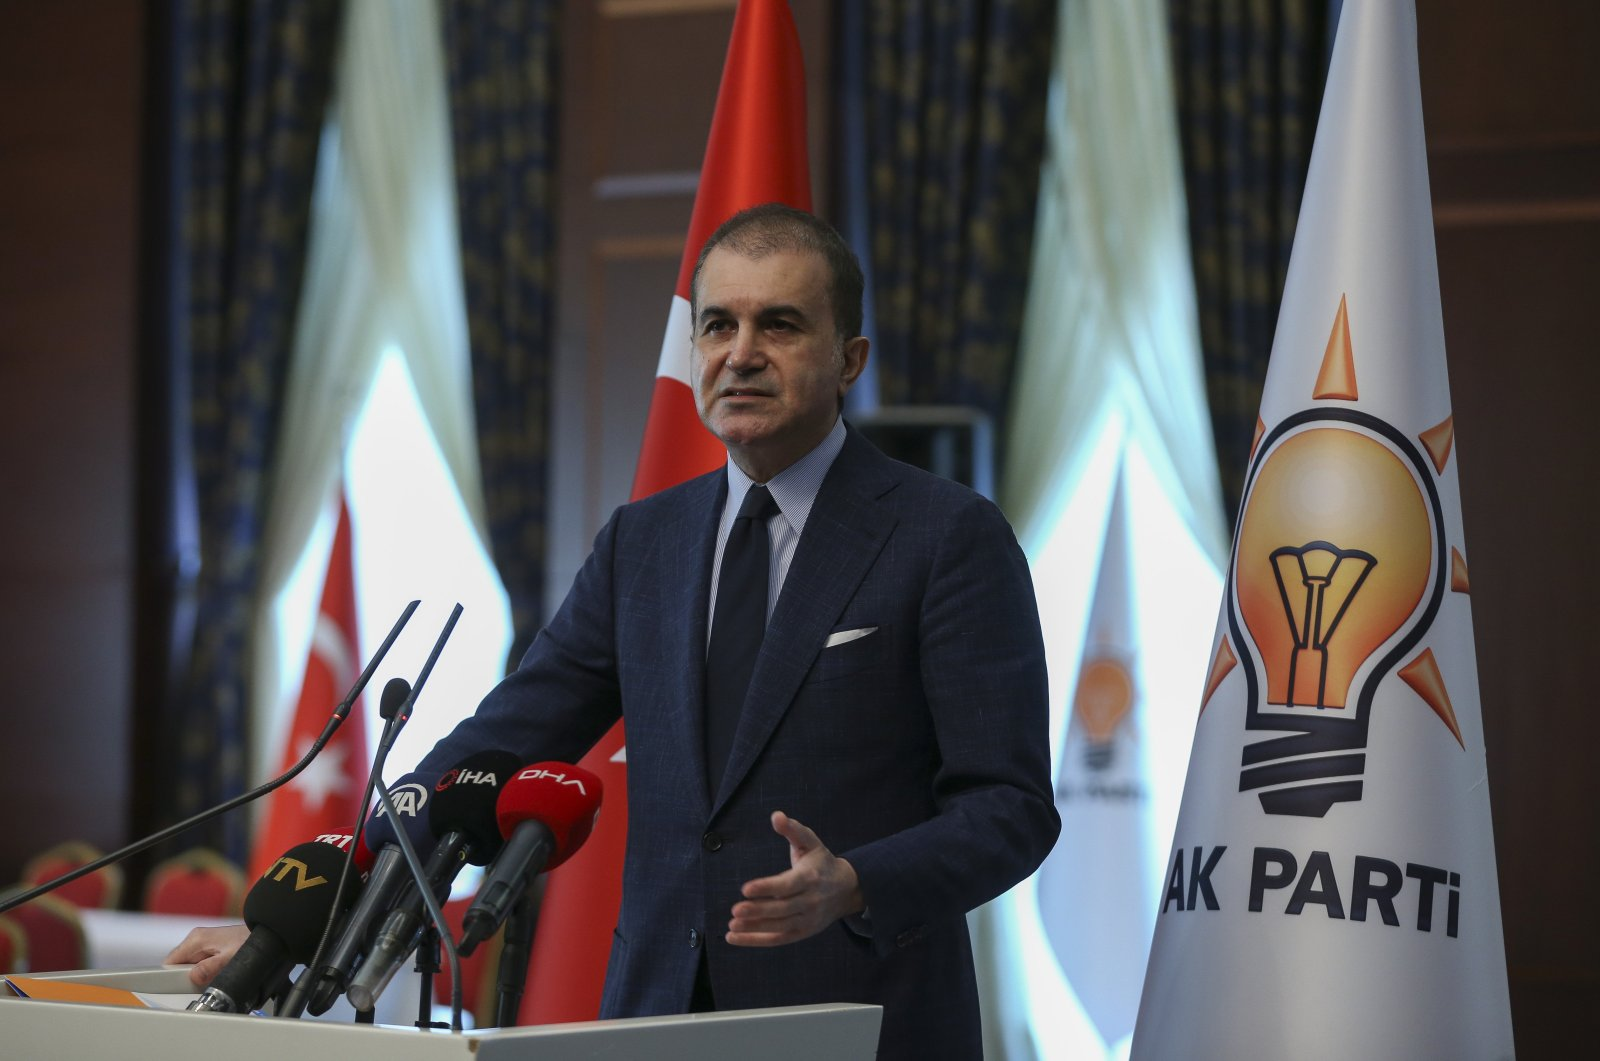 Justice and Development Party (AK Party) Spokesperson Ömer Çelik addresses reporters following a meeting in the capital Ankara, April, 28, 2020. (AA Photo)